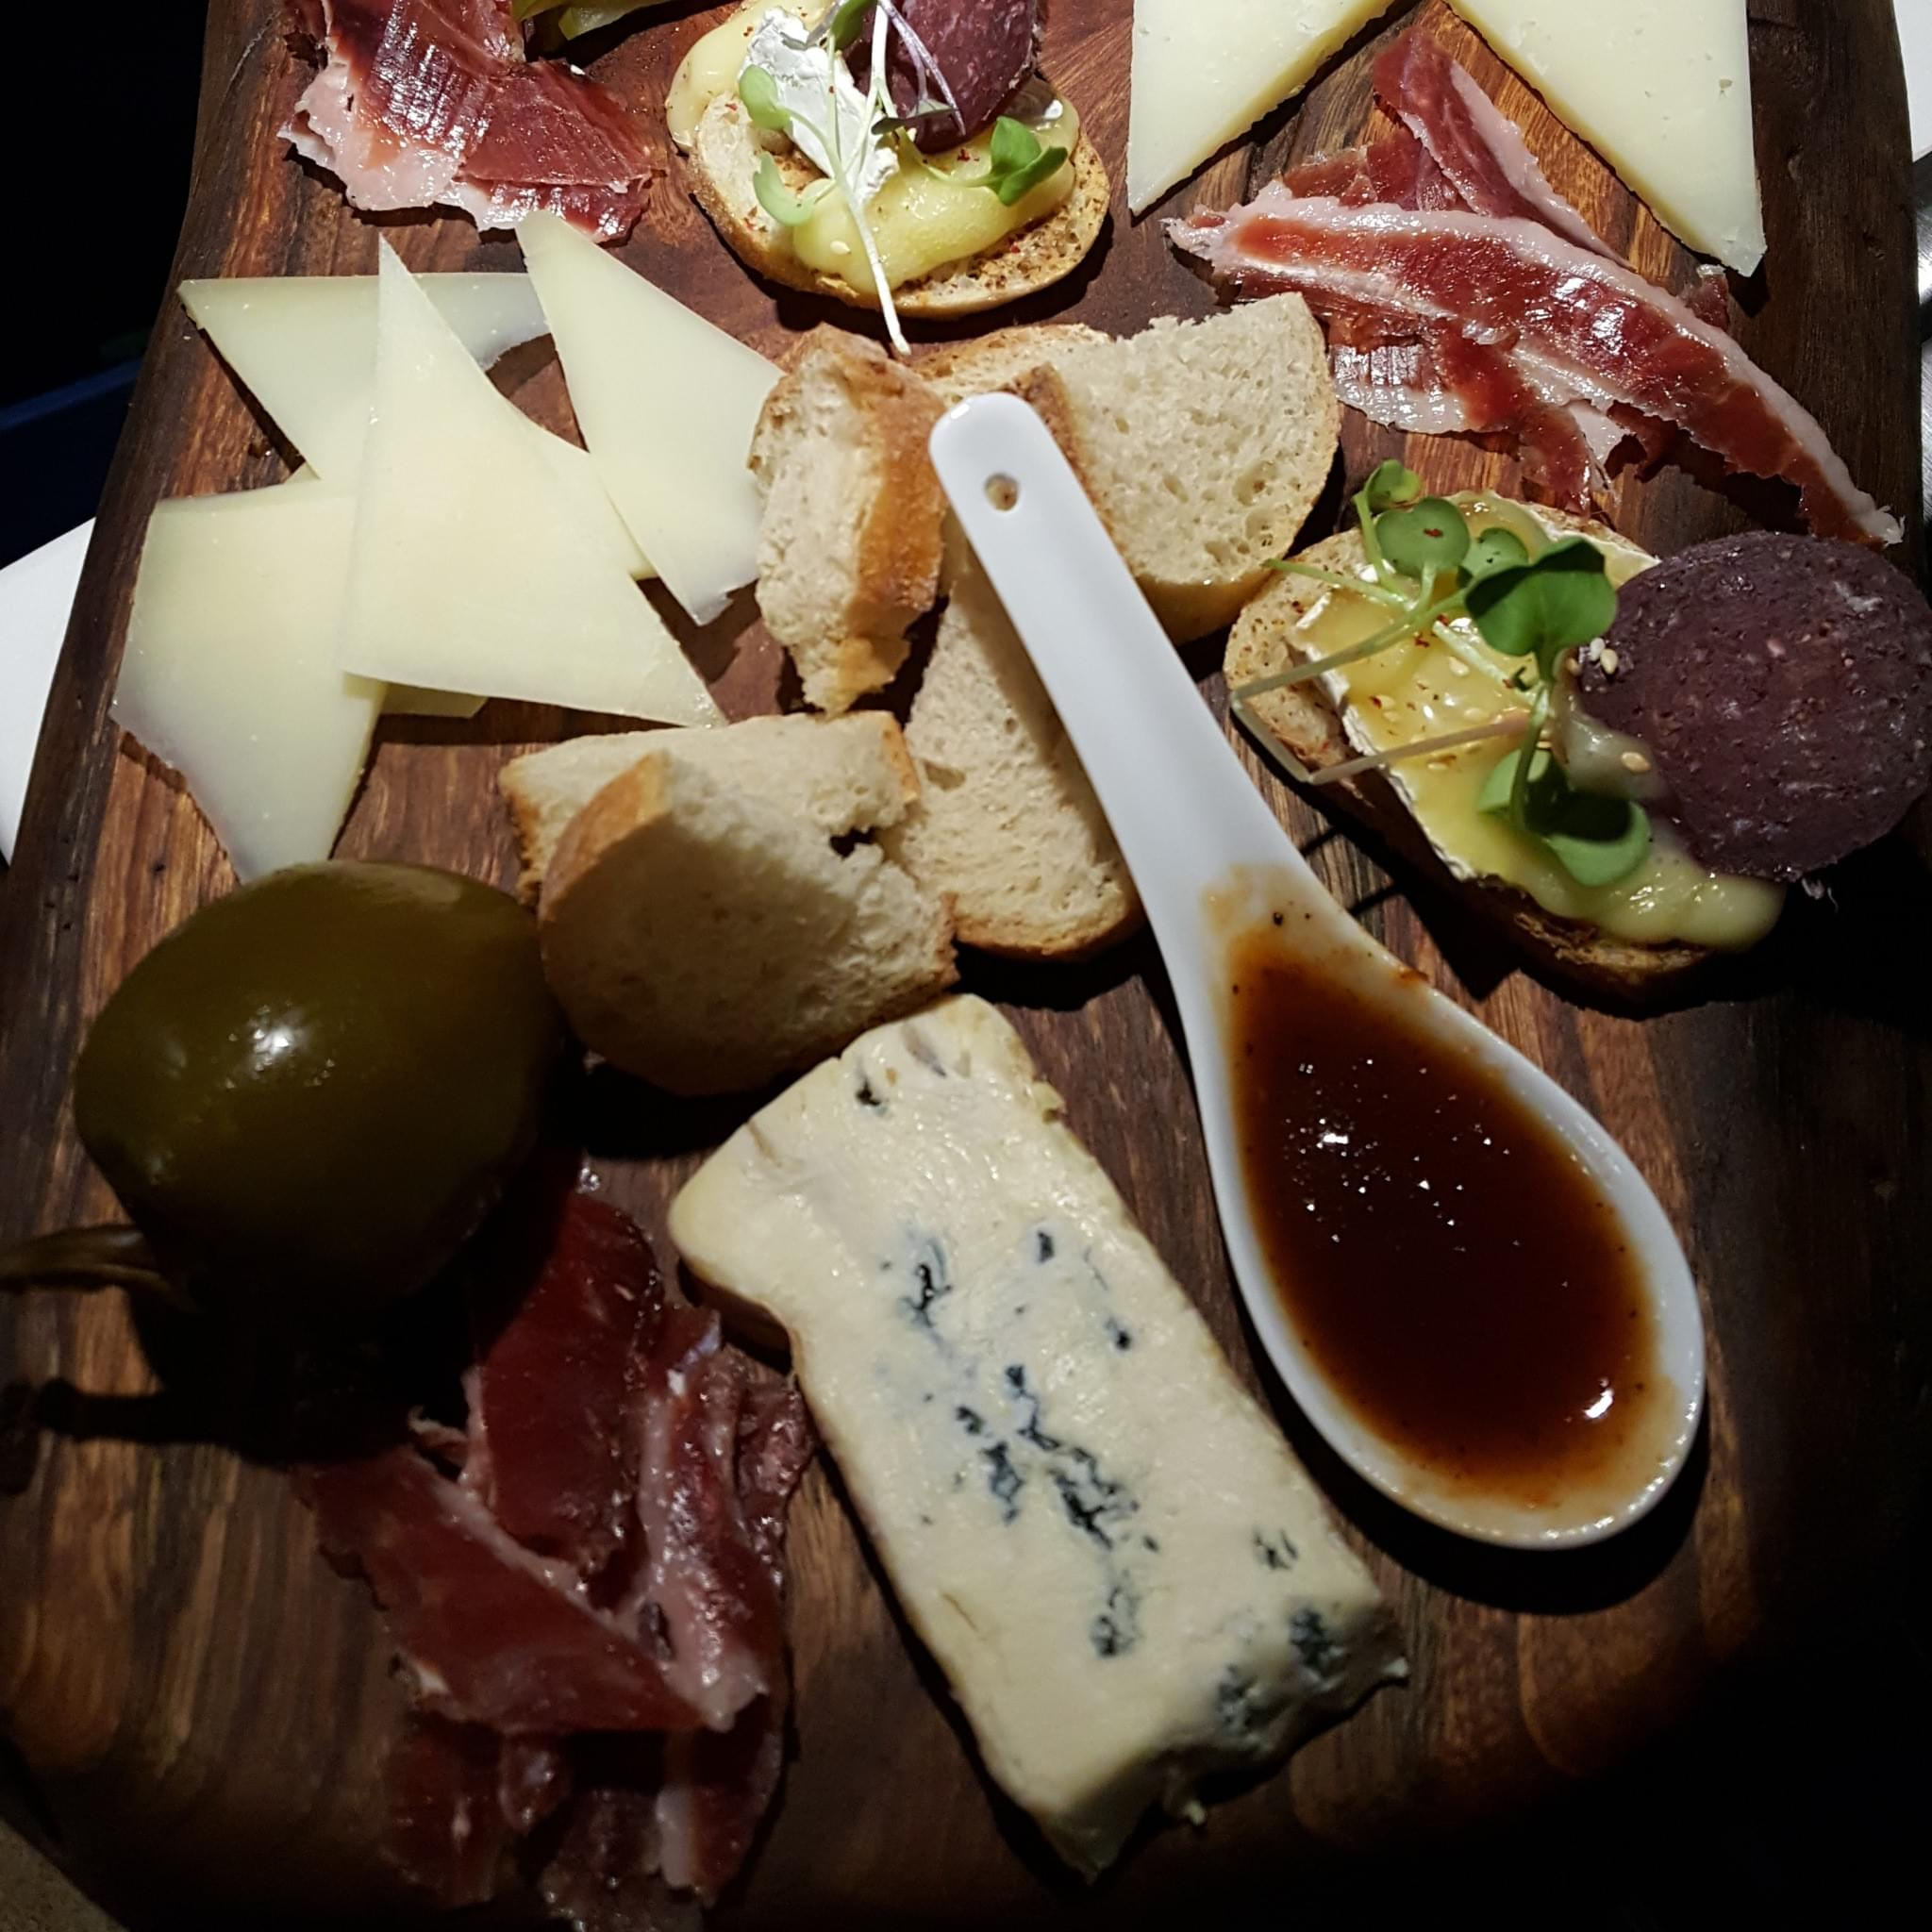 French Cow cheese/charcuterie board!